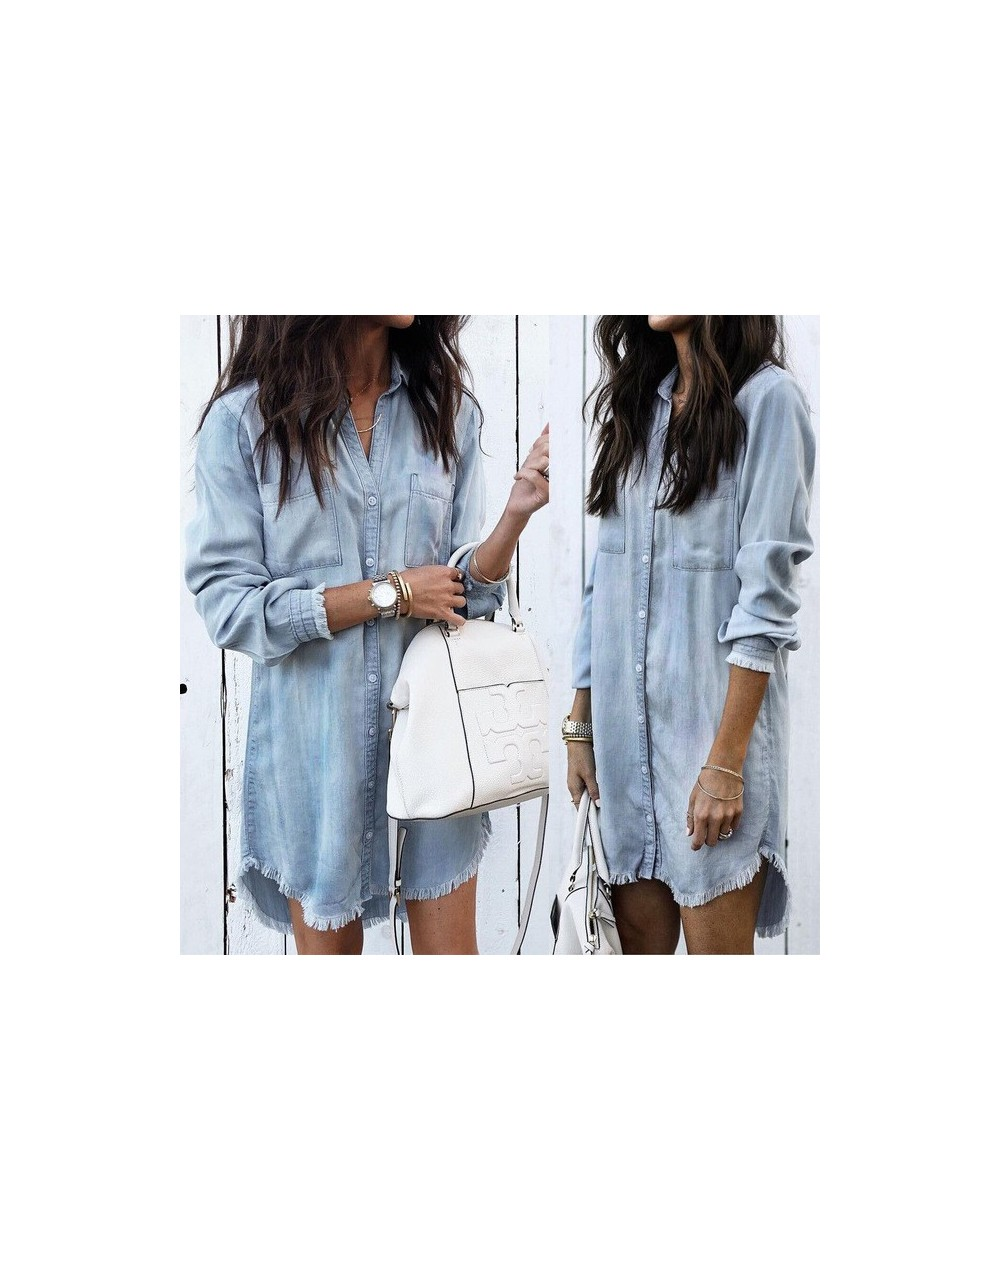 2018 Autumn Women Causal Blouse Tops 3 Style Long Sleeve Single Breasted Solid Denim Long Length Blouse Tops - Blue - 474112...